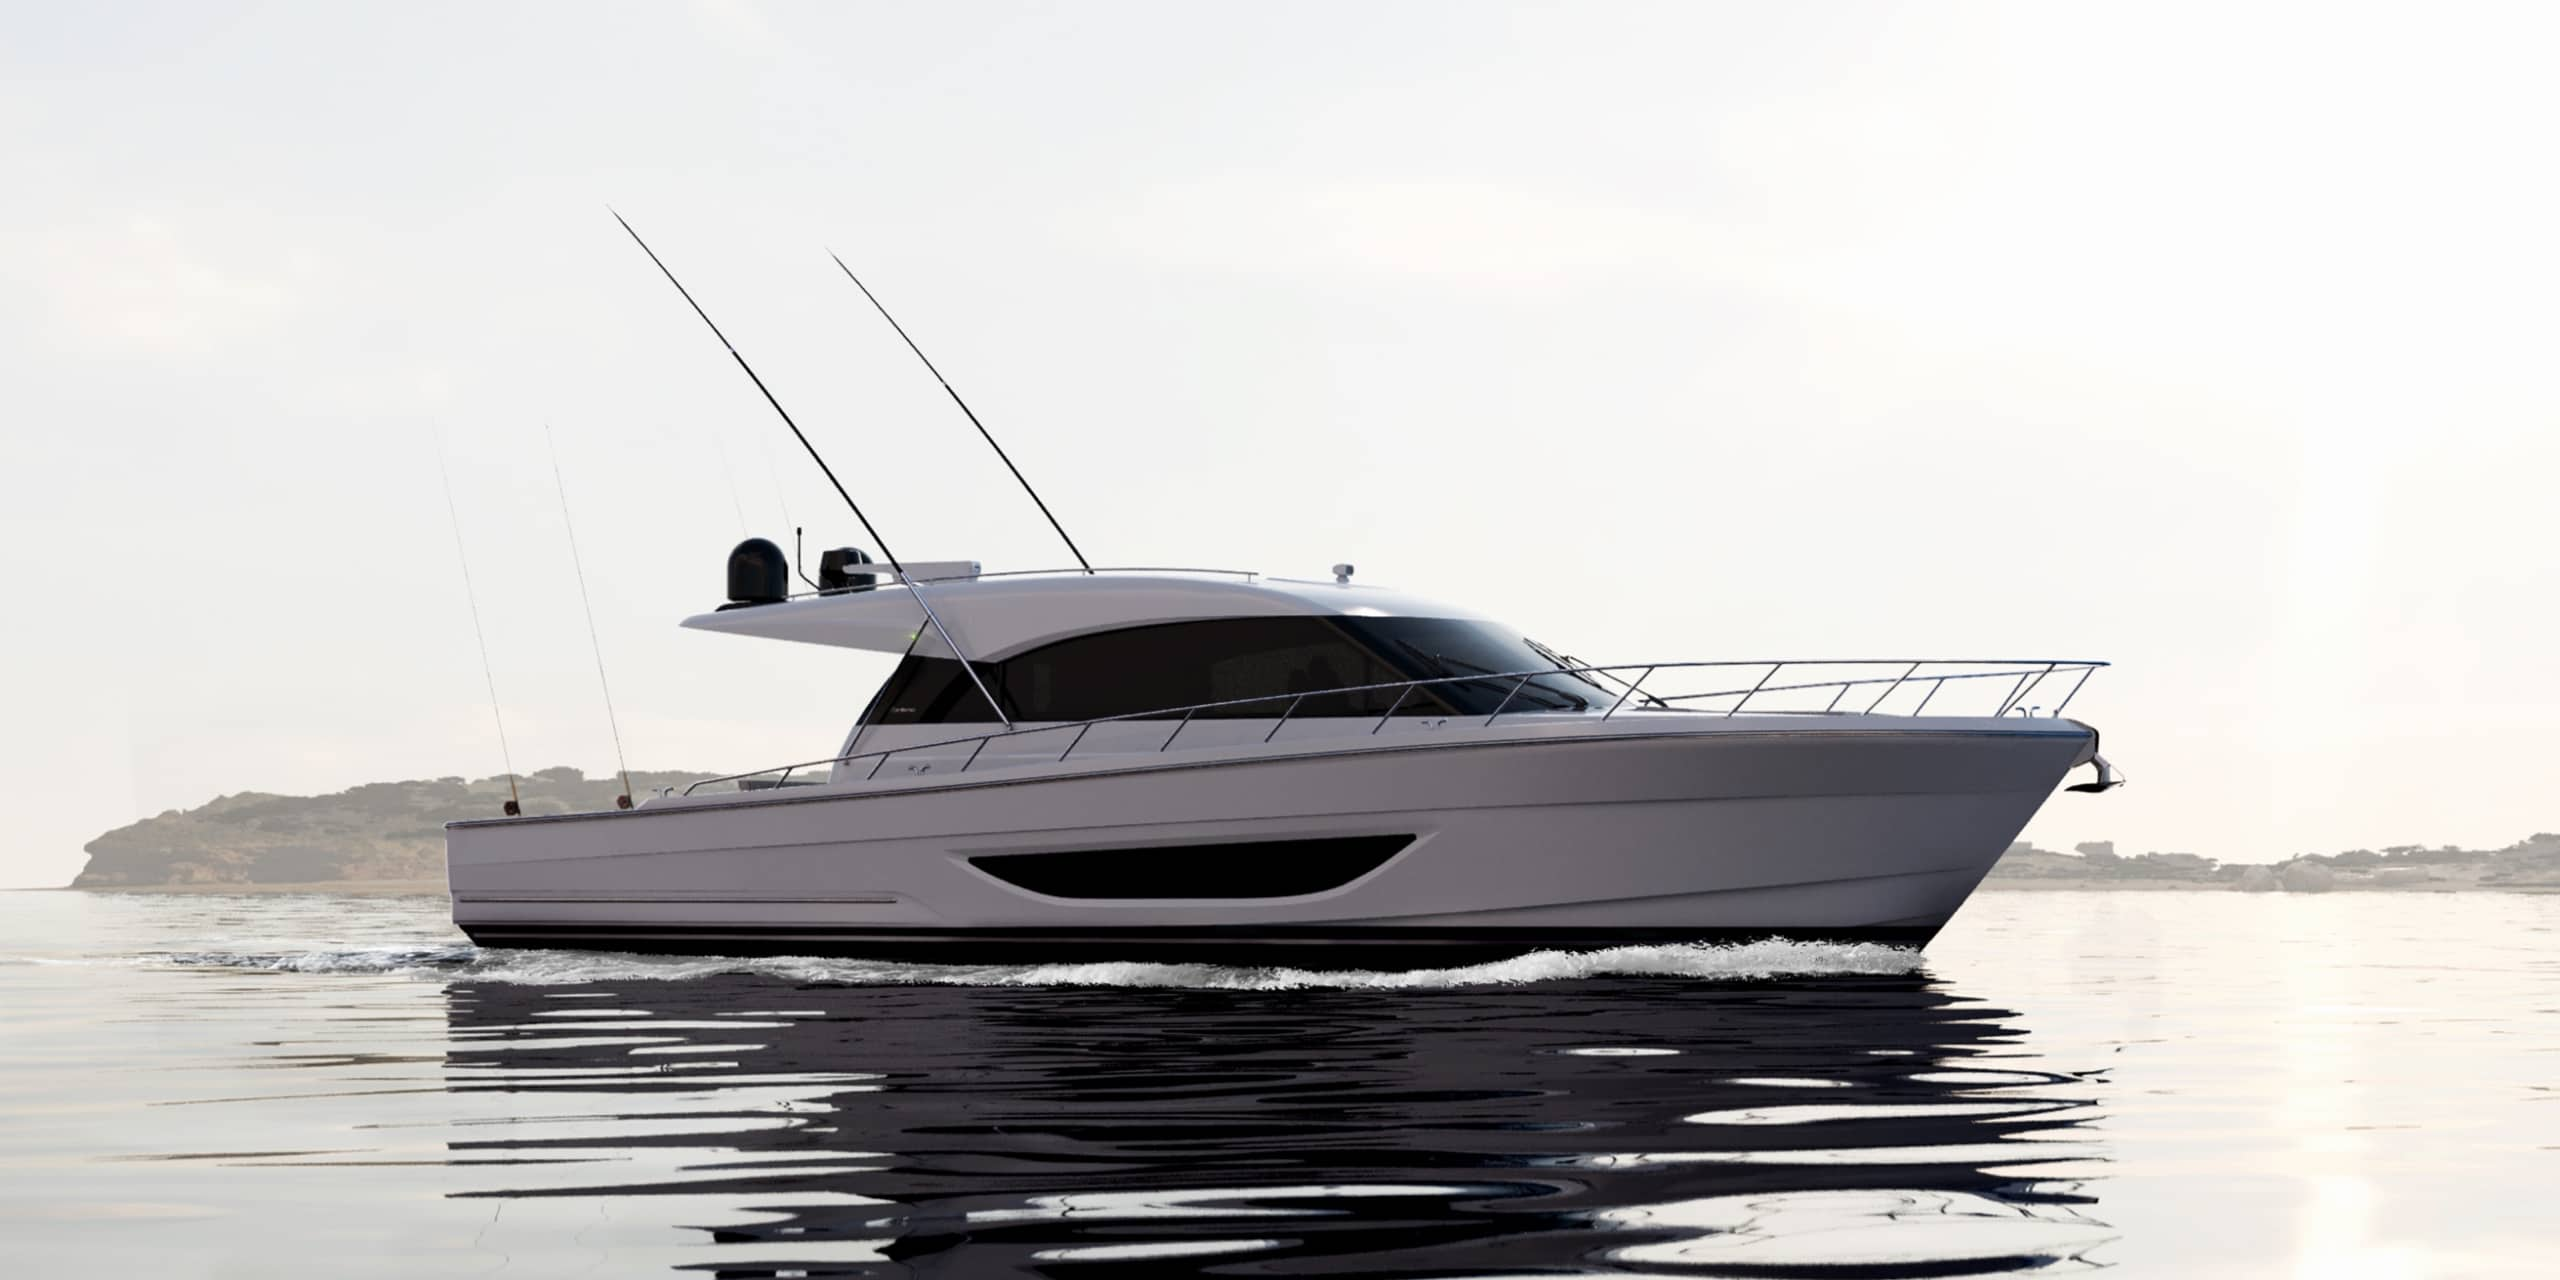 new Maritimo S600 Offshore Sedan Motor Yacht crusing and pictured from the side